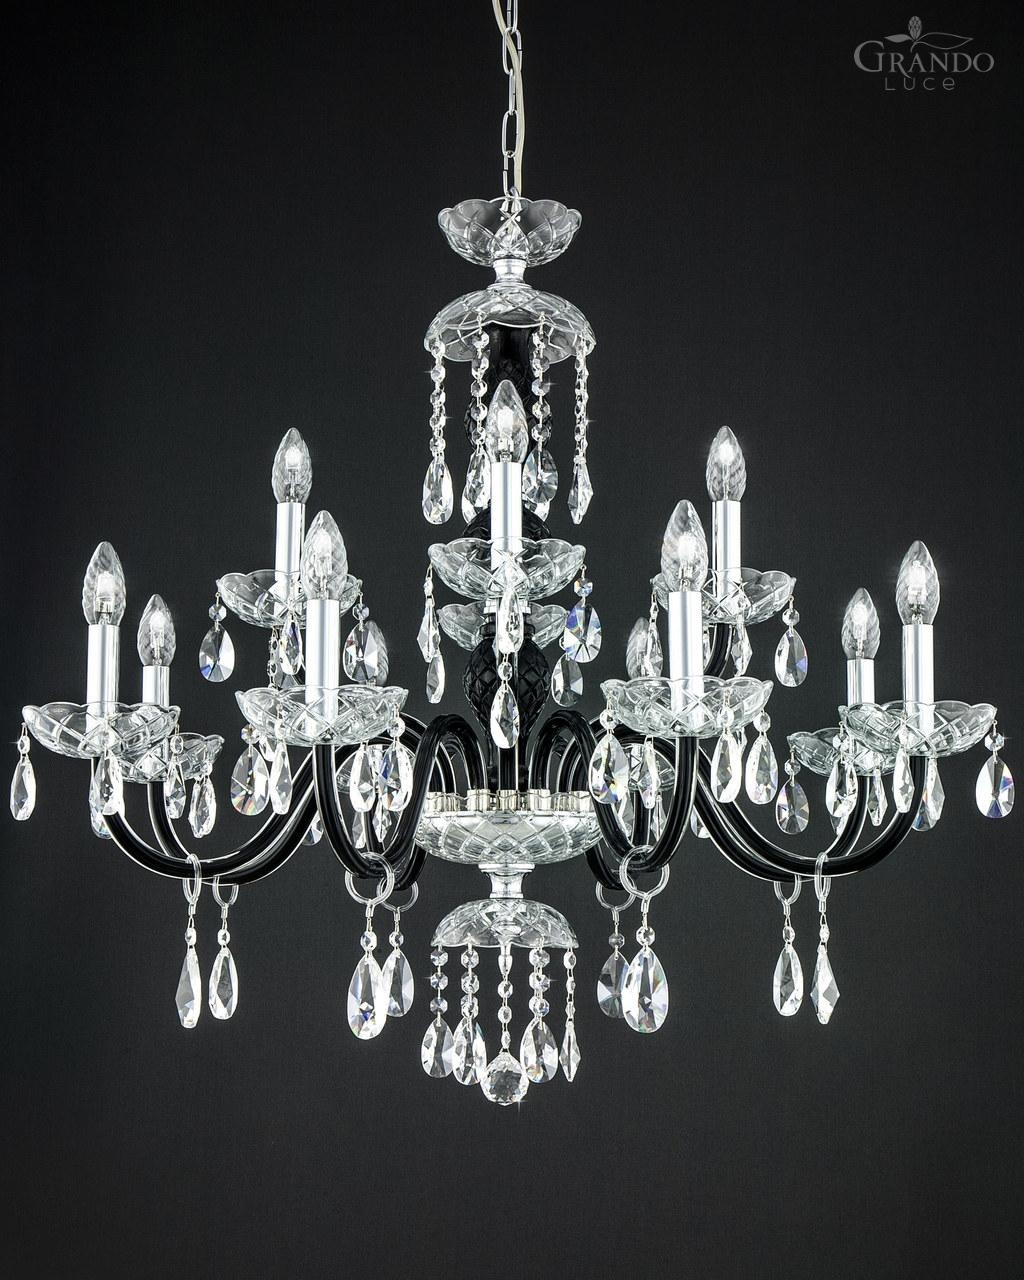 10484 Ch Chrome Black Crystal Chandelier Grandoluce With Chrome And Crystal Chandeliers (View 12 of 25)